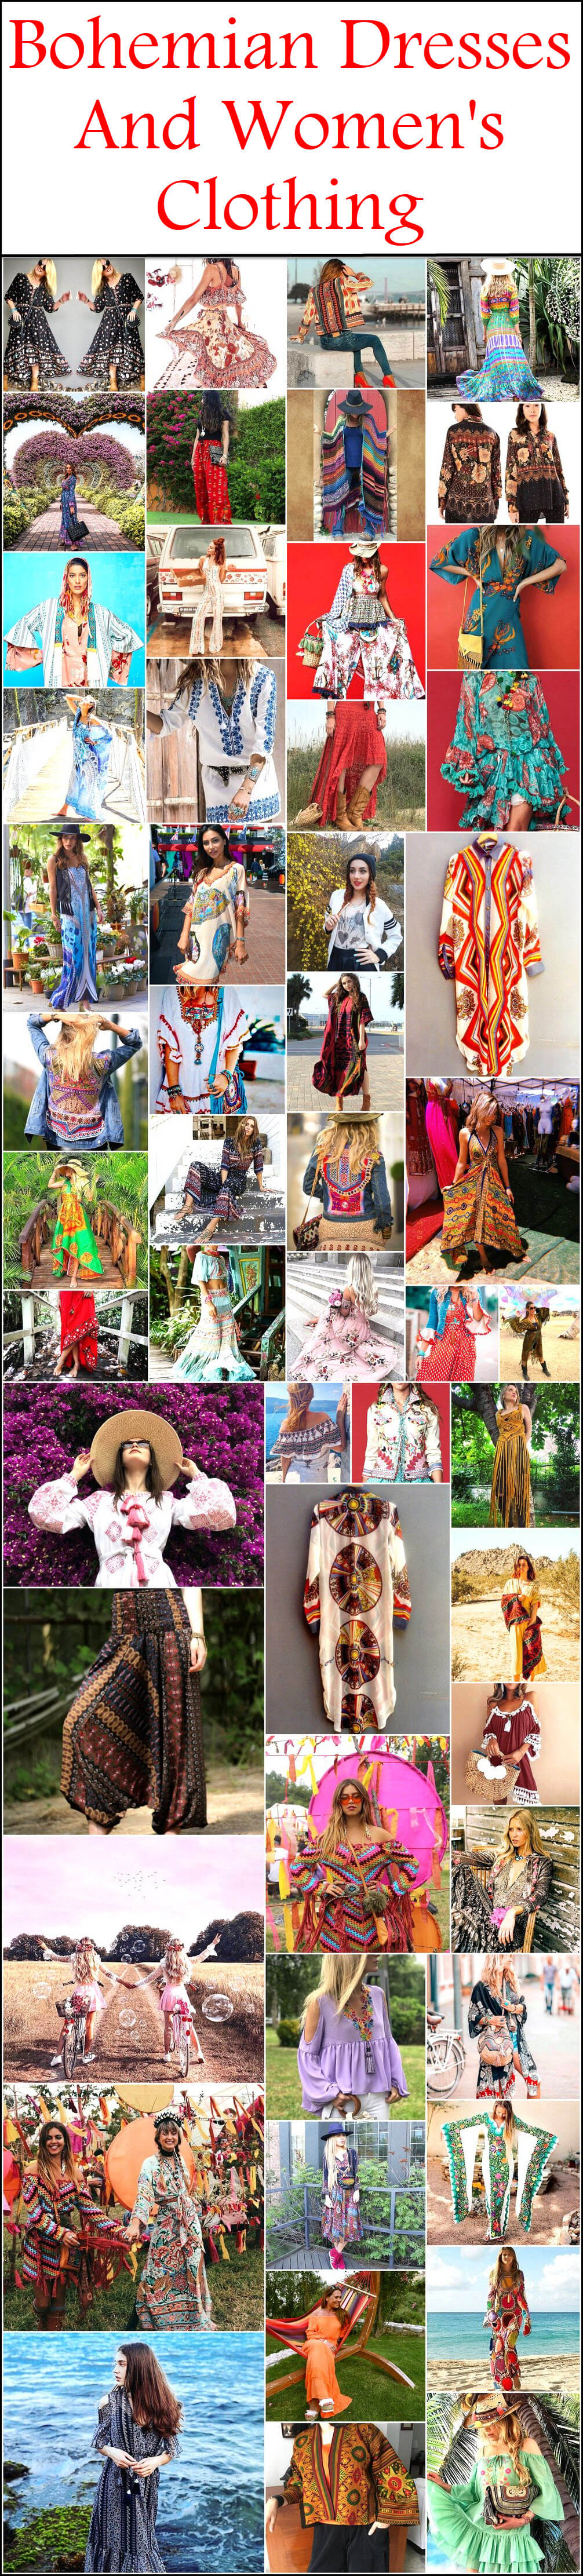 Bohemian Dresses And Women's Clothing